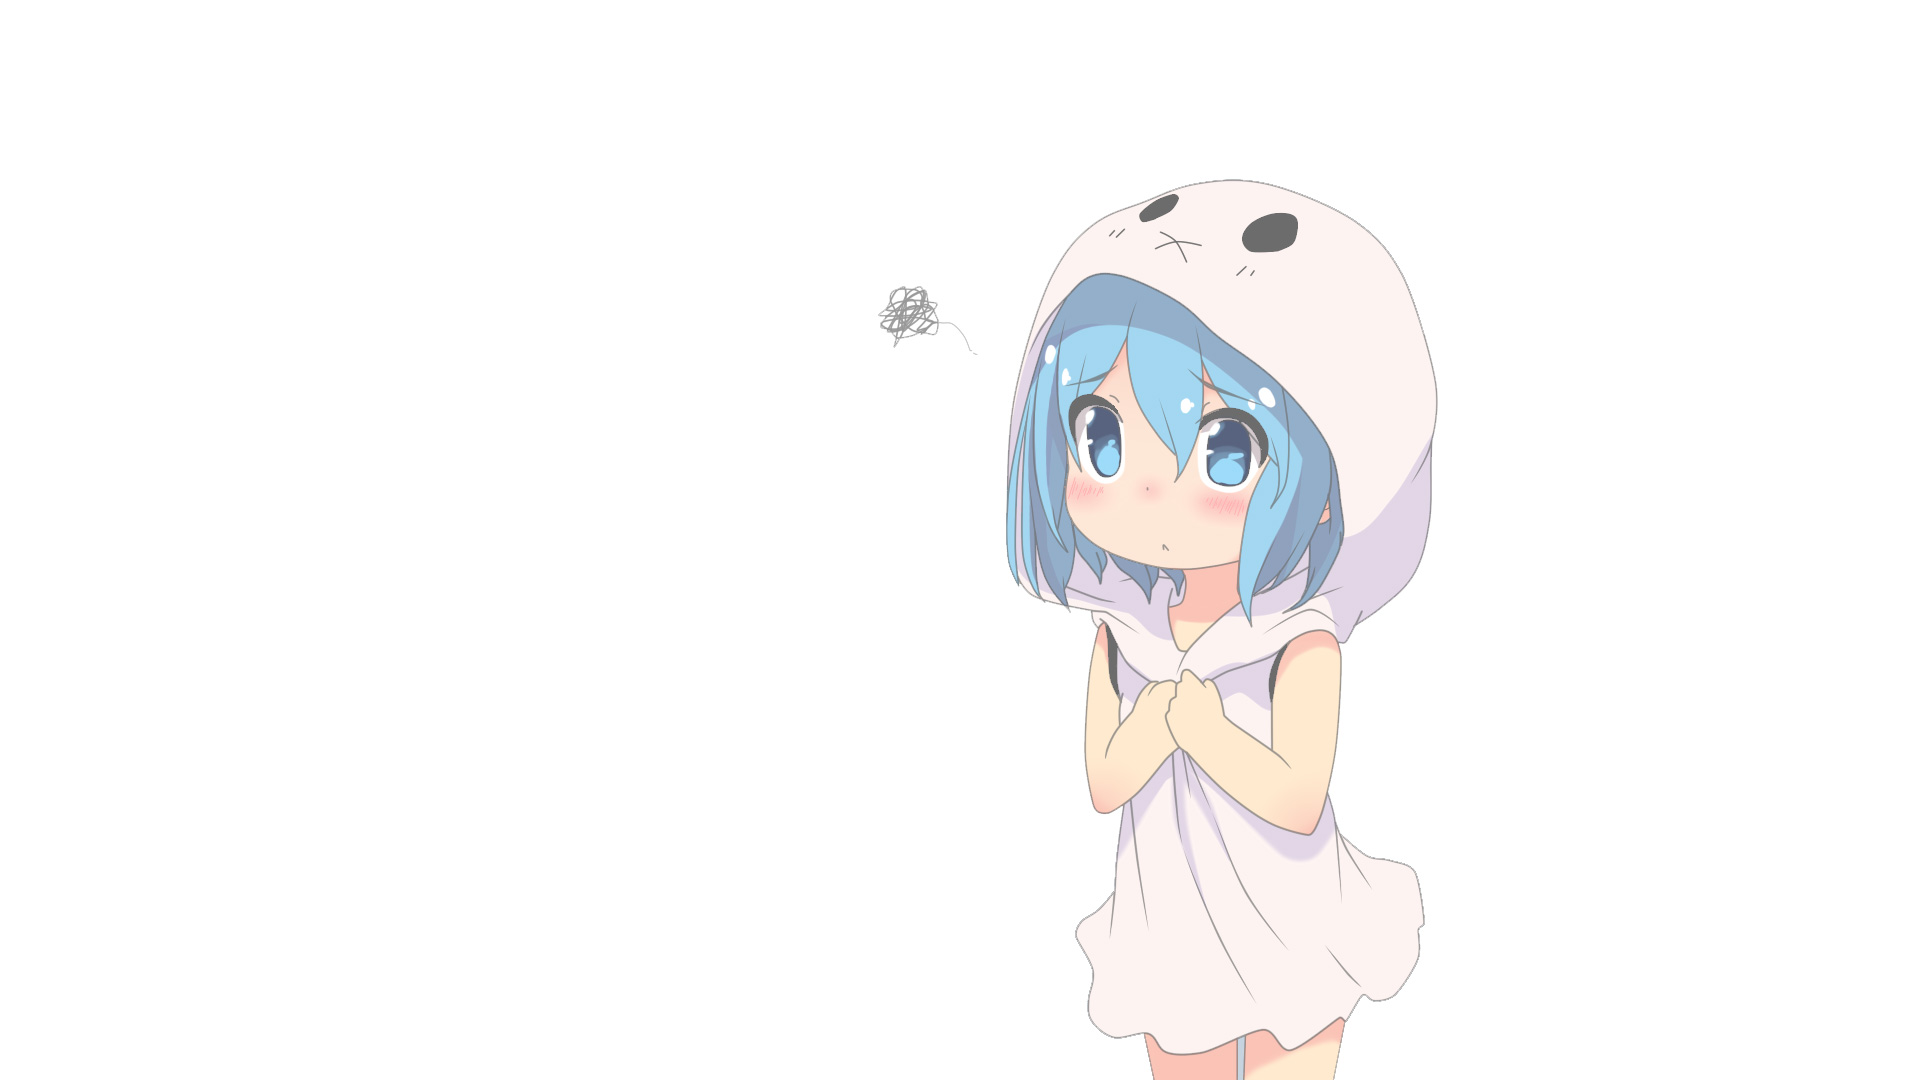 Cute Anime Little Girl